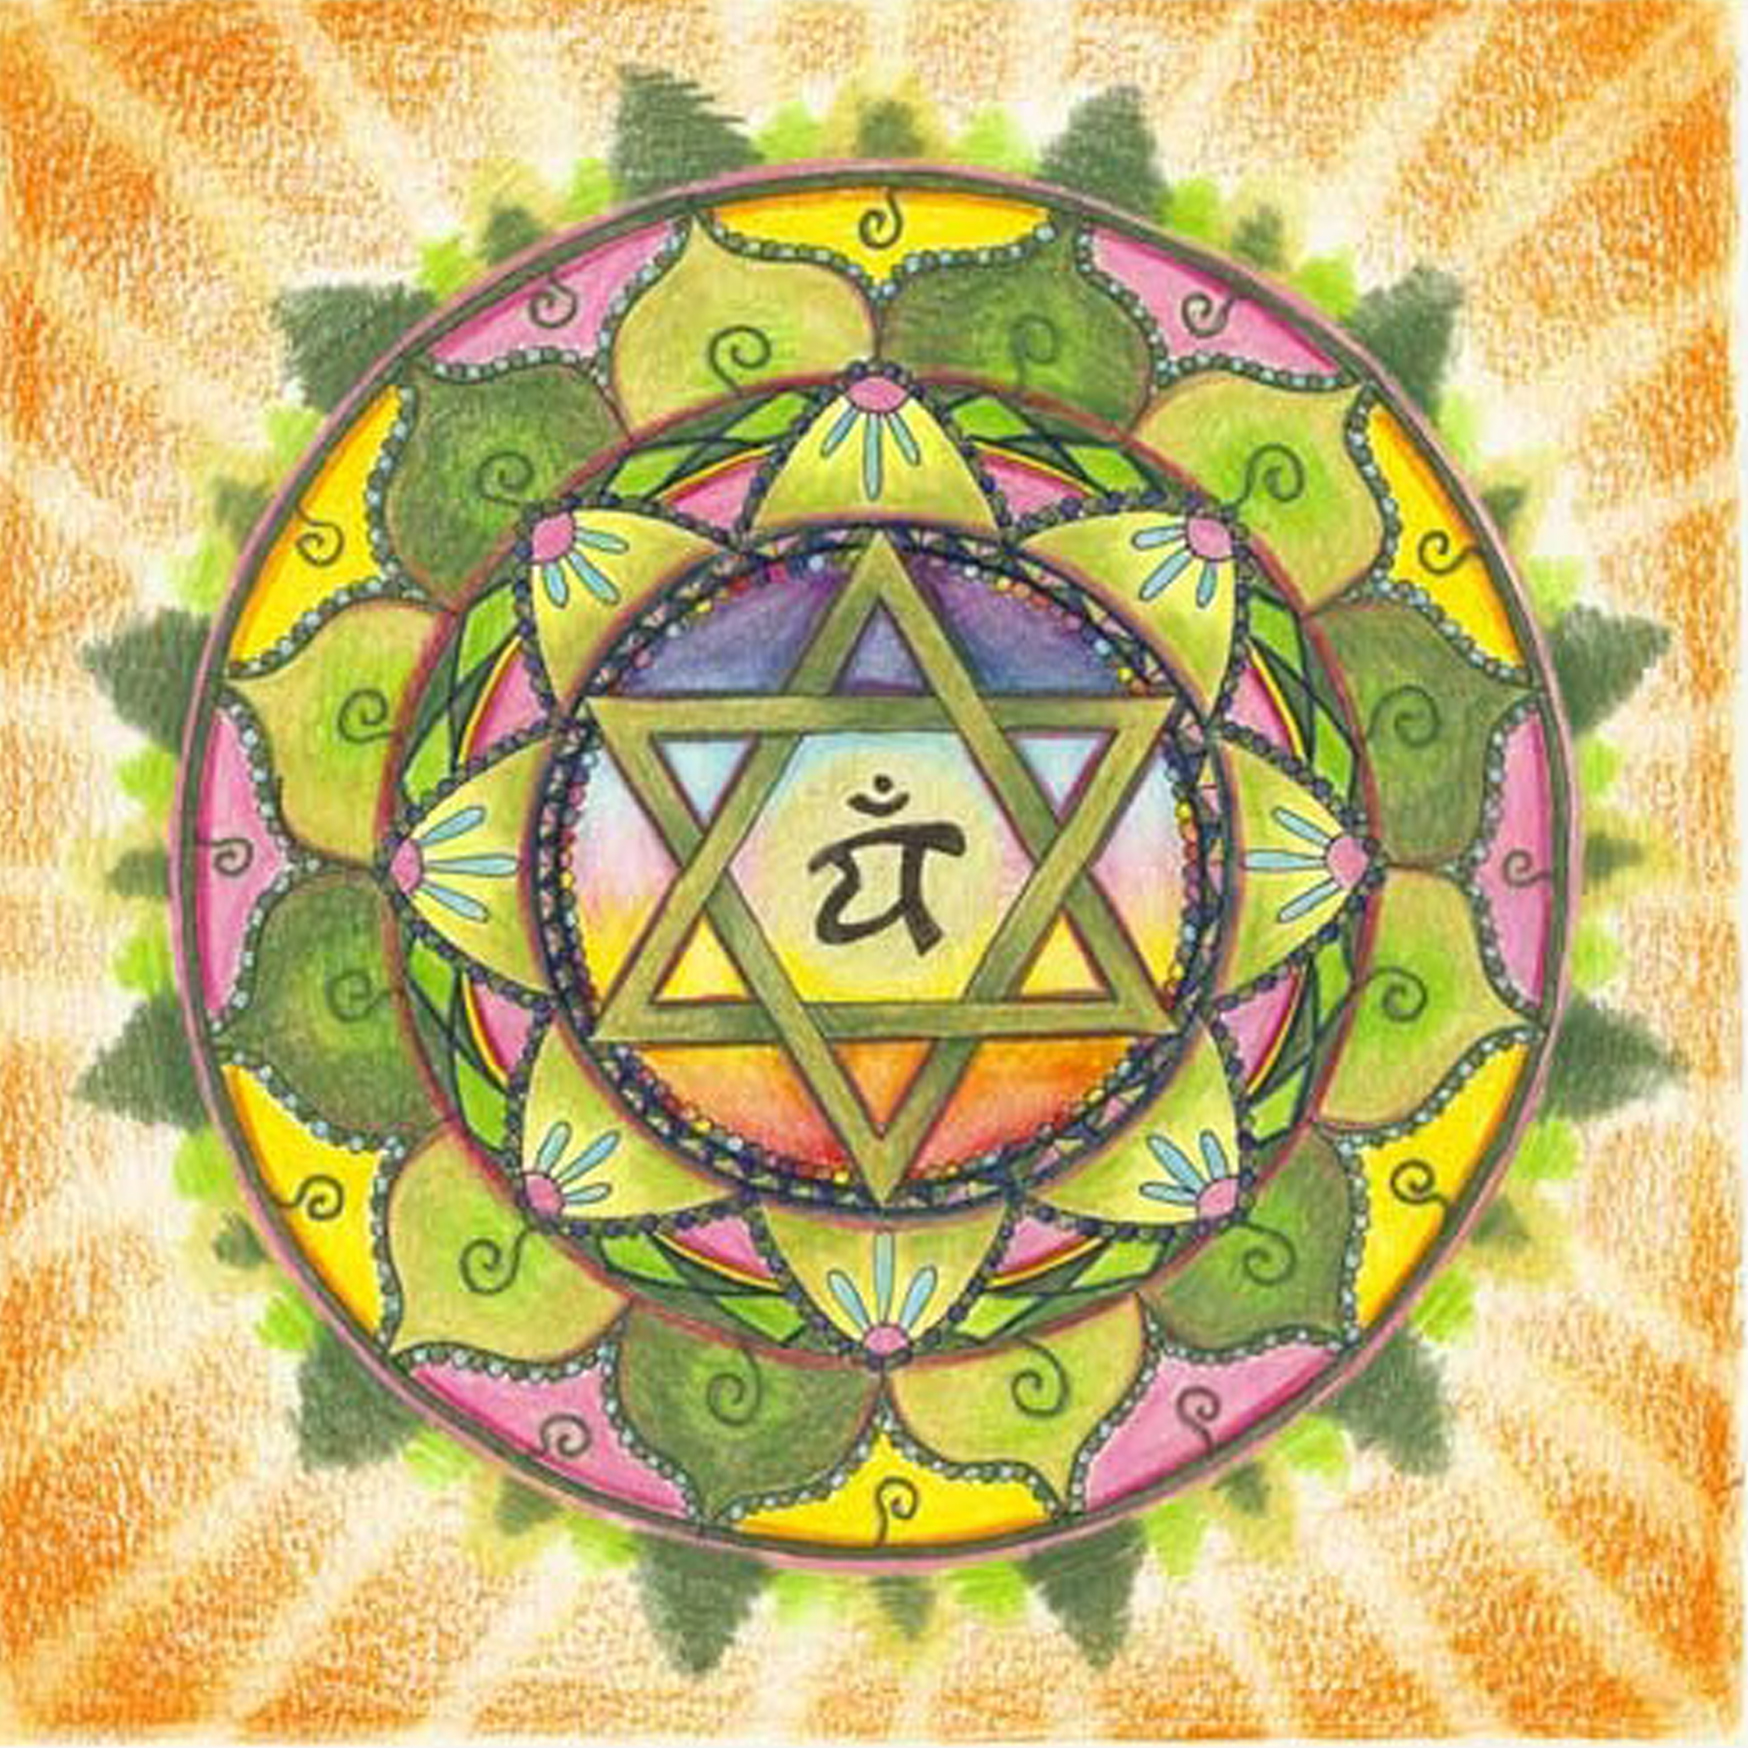 Heart Chakra Mandala Coloring Page Images amp Pictures Becuo